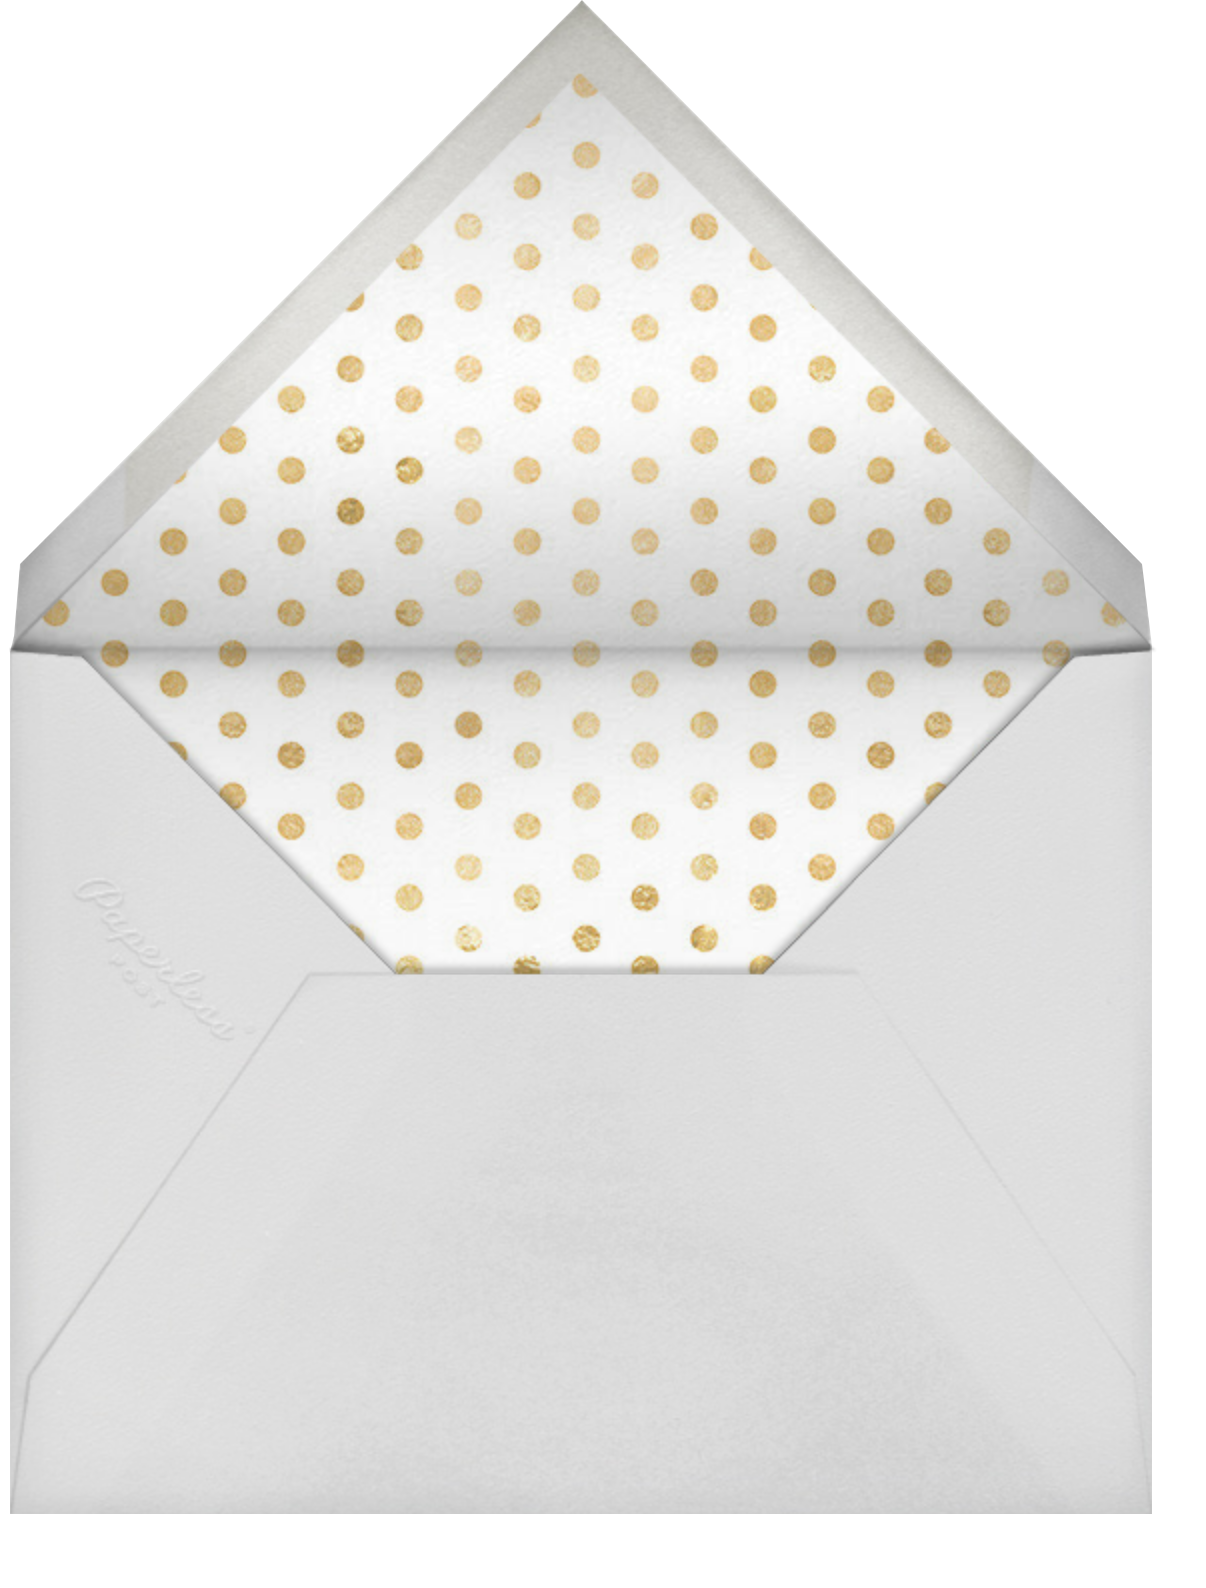 Champagne Tower - Deep - Rifle Paper Co. - New Year's Eve - envelope back